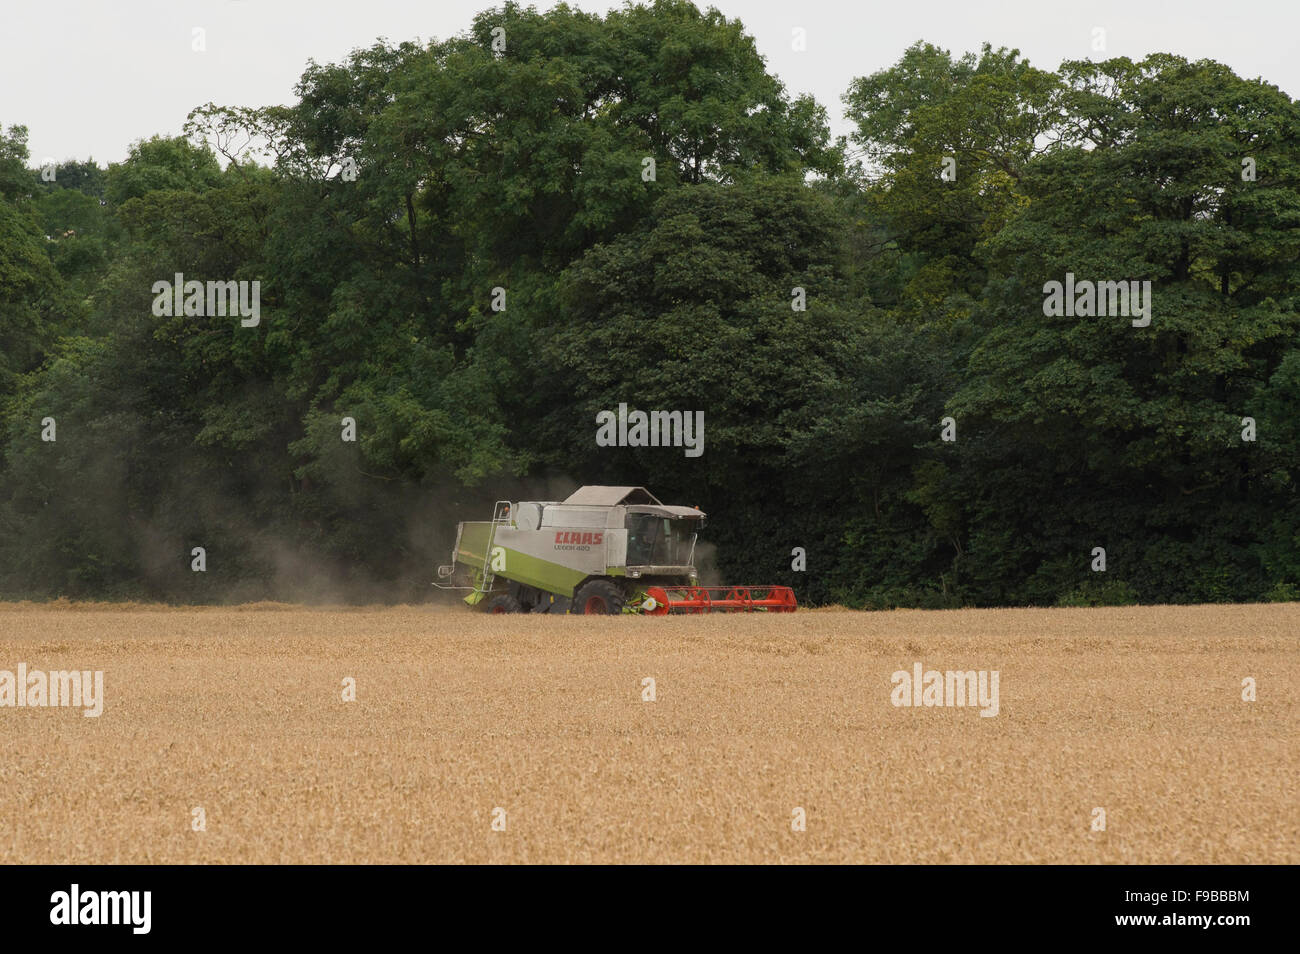 Summer farm work  - an agricultural machine (Claas combine harvester) is working in a dusty wheat field at harvest - Stock Image